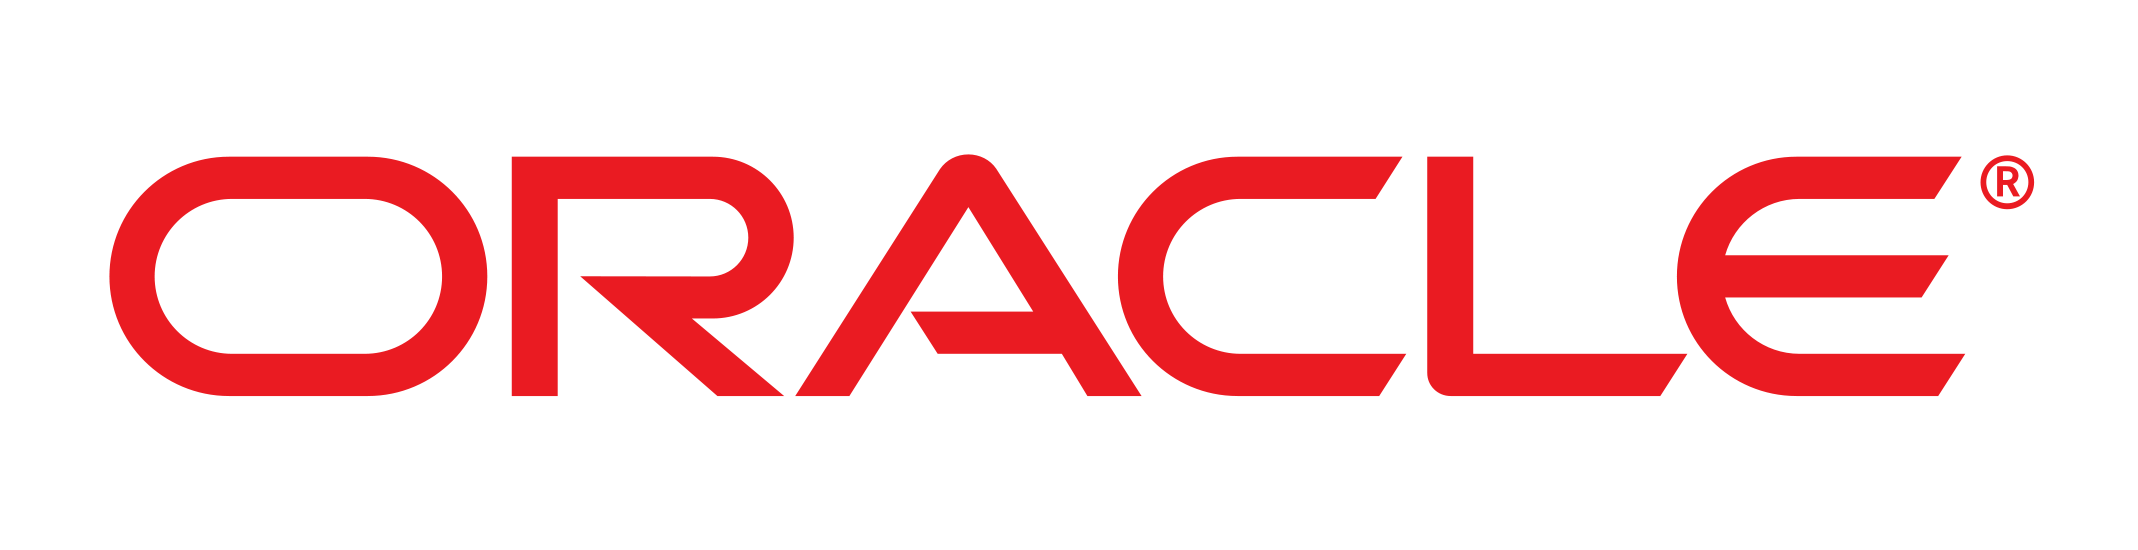 Oracle Logo - Oracle Logo, Oracle Symbol, Meaning, History and Evolution